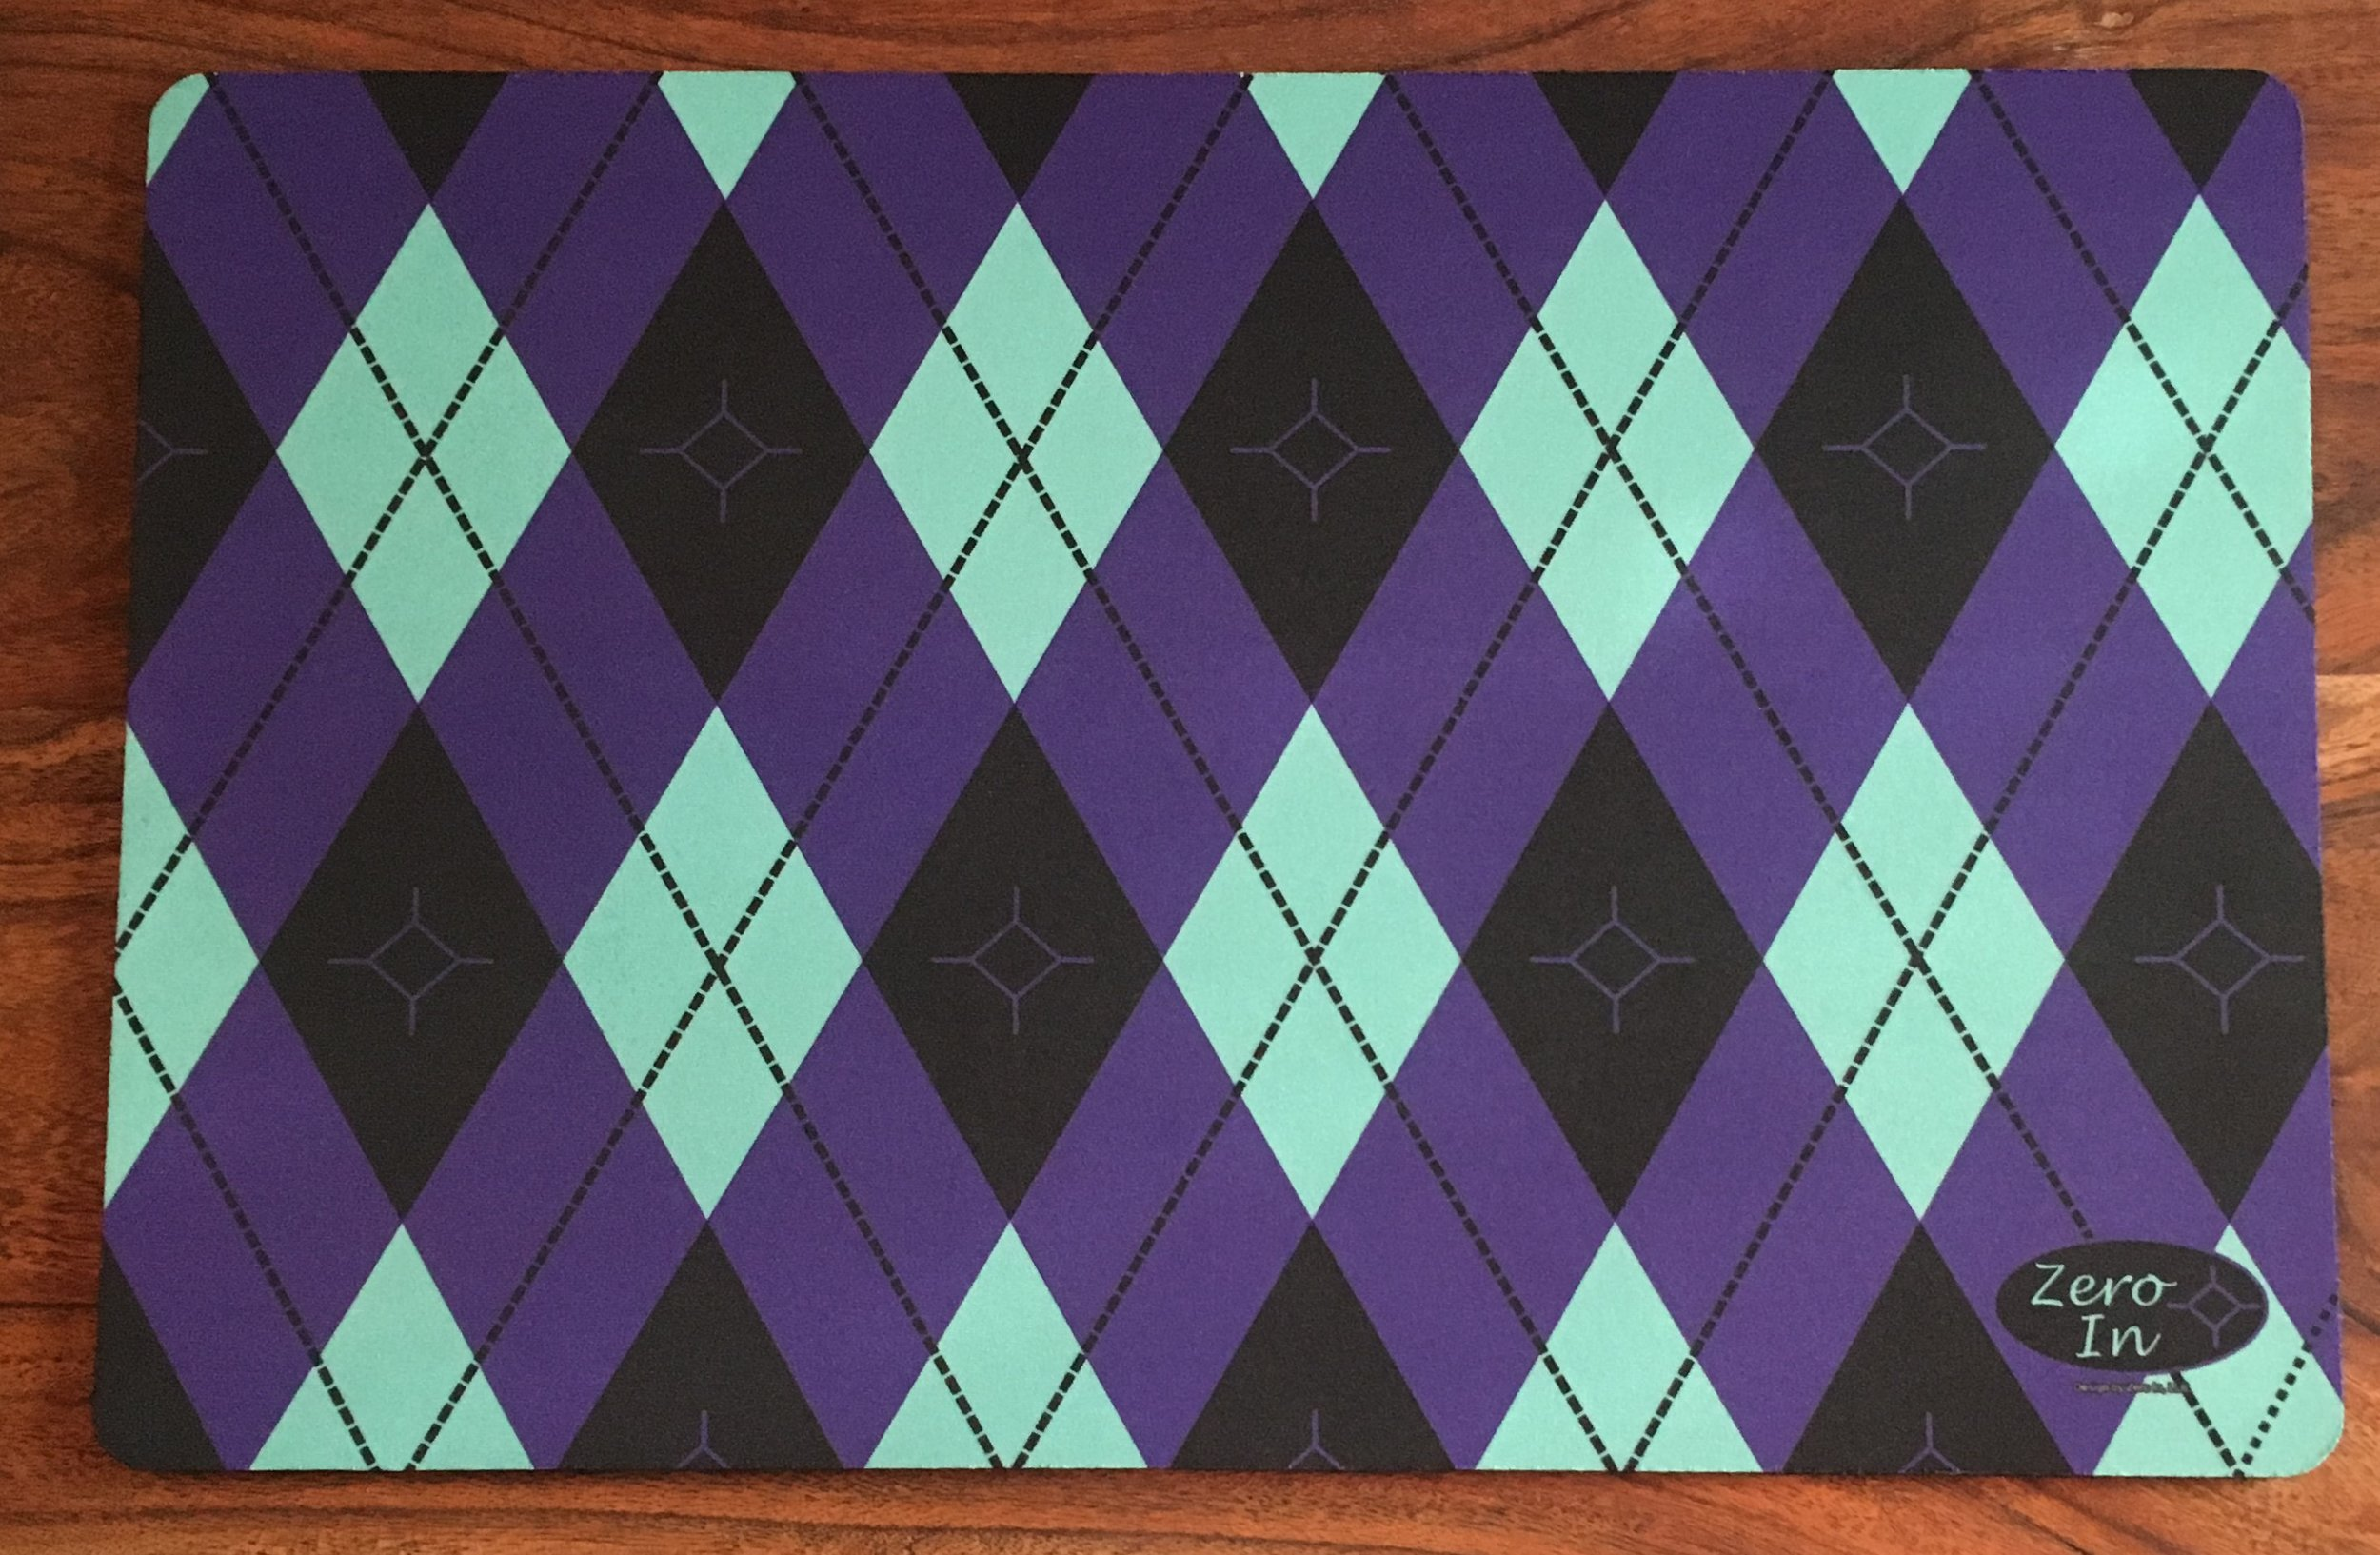 Signature Argyle - We utilized our flagship colors of Deep Lavender and Light Aqua Green, then dotted it with the Zero In diamond.  This is the first design that started it all (and our favorite!)